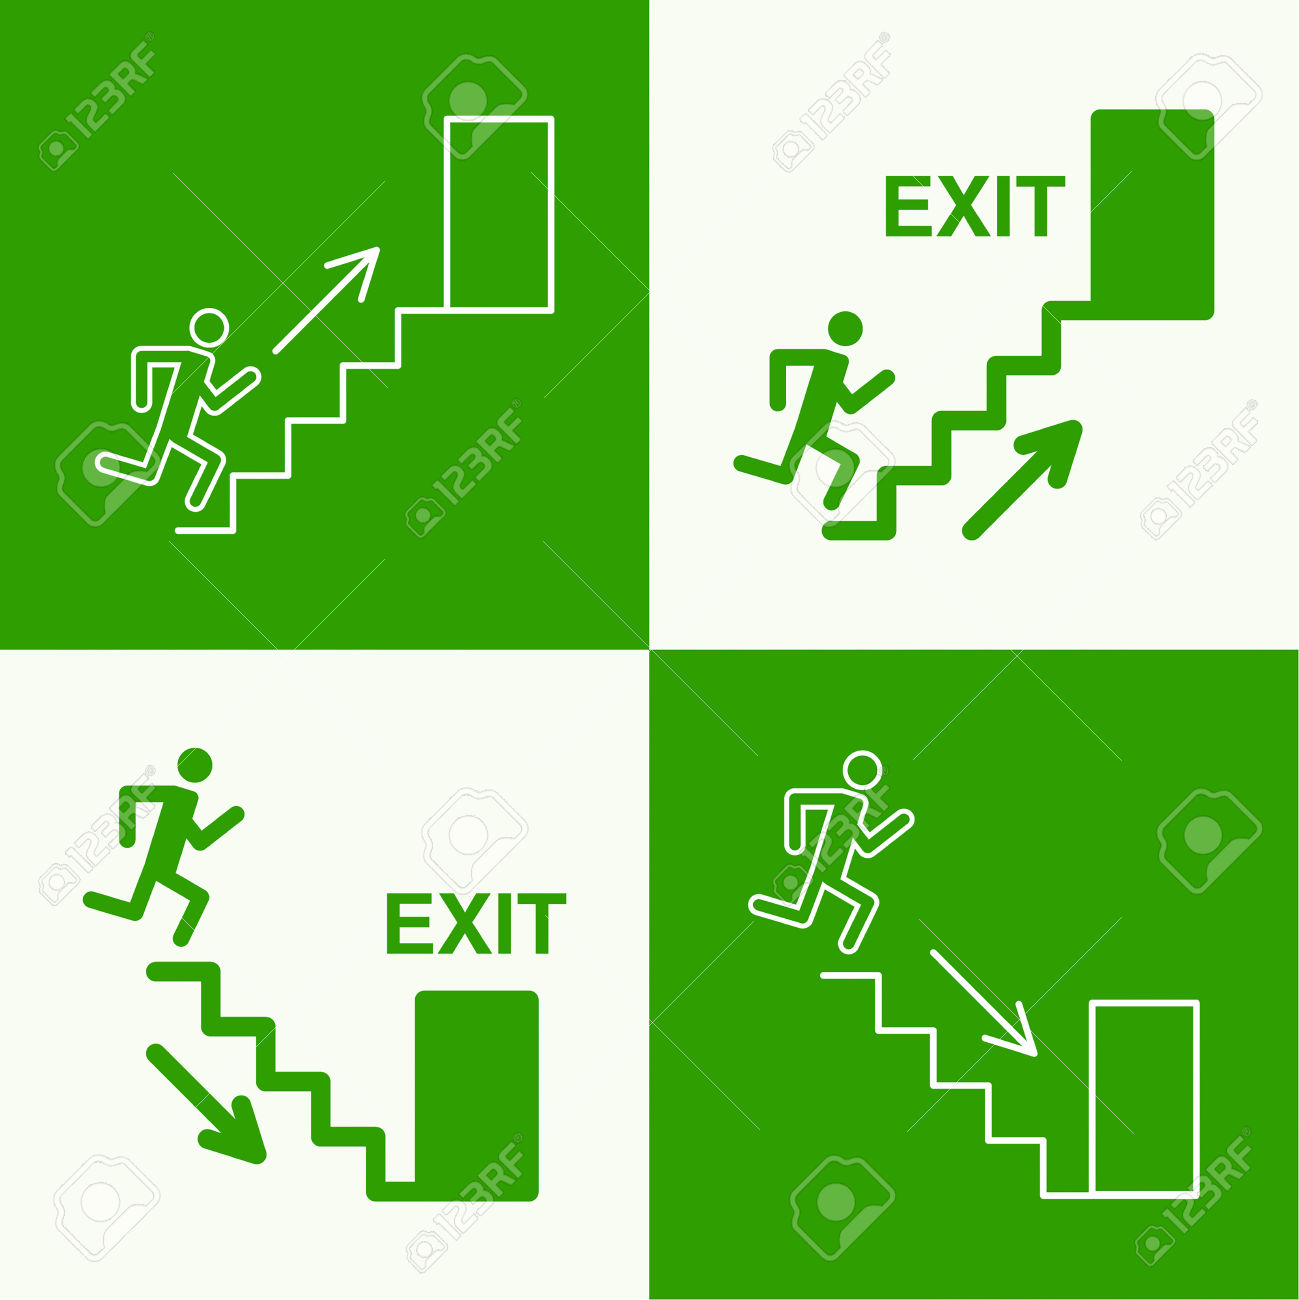 Emergency Exit Sign. Running Man On A Green Background. Vector.